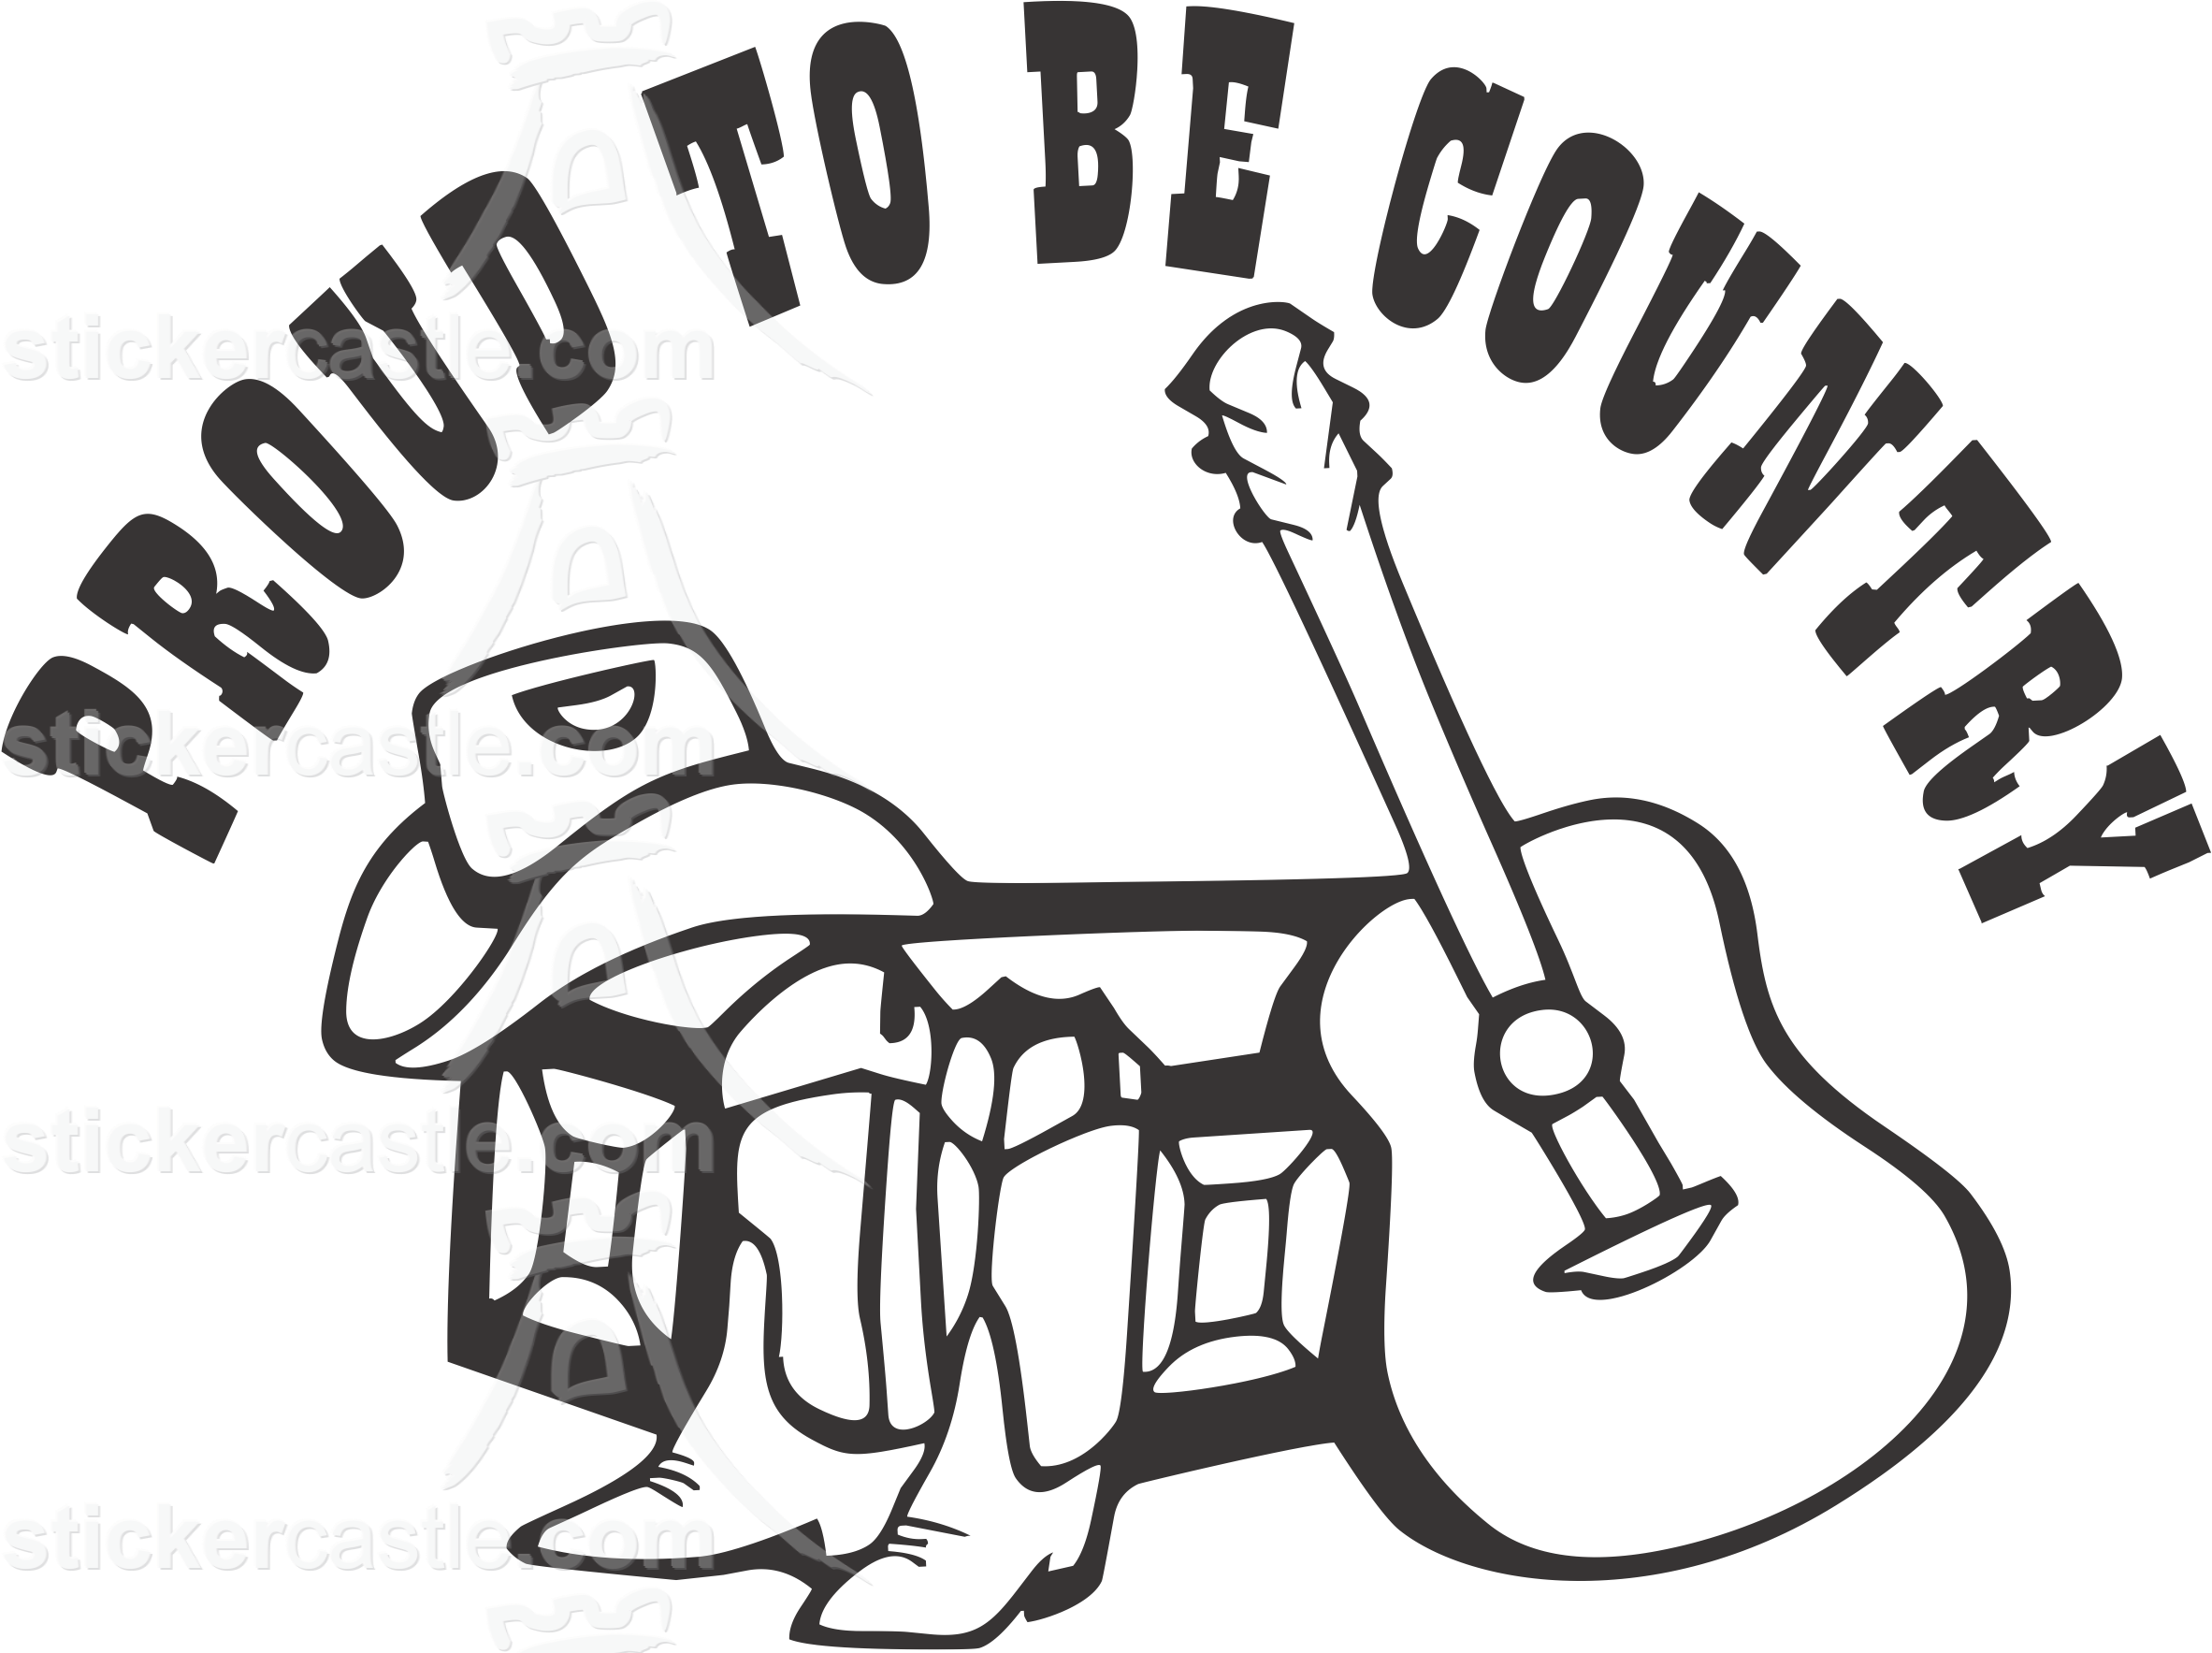 Western drawing country. Sticker decal stickers i